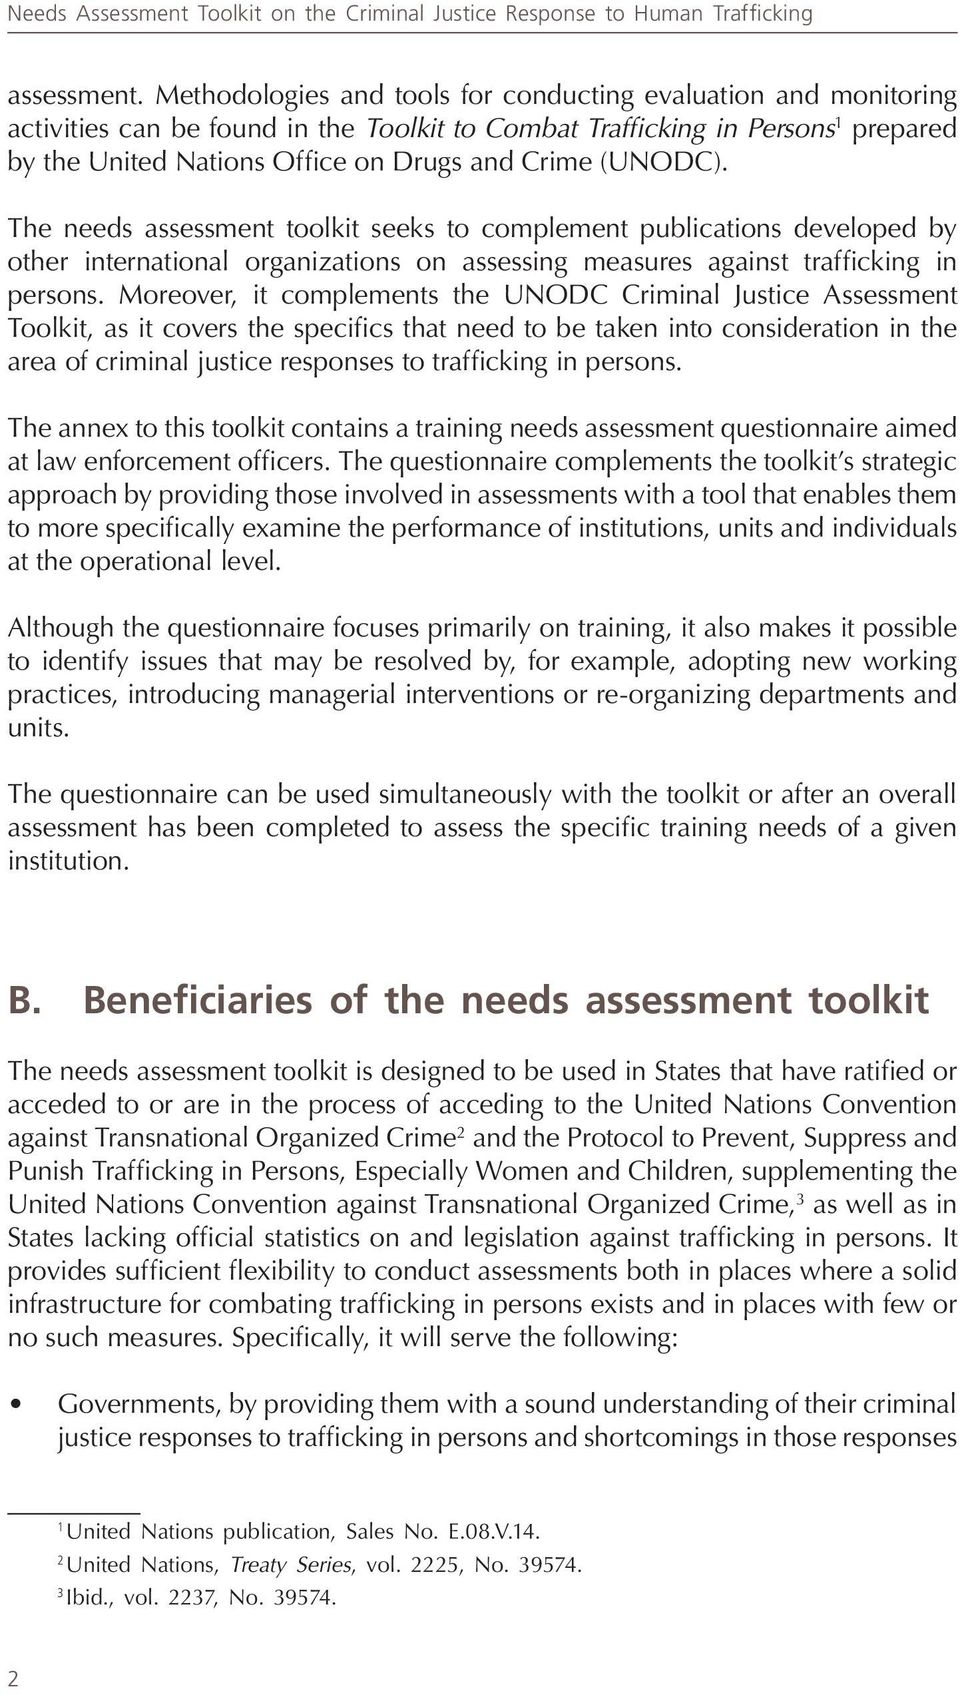 (UNODC). The needs assessment toolkit seeks to complement publications developed by other international organizations on assessing measures against trafficking in persons.